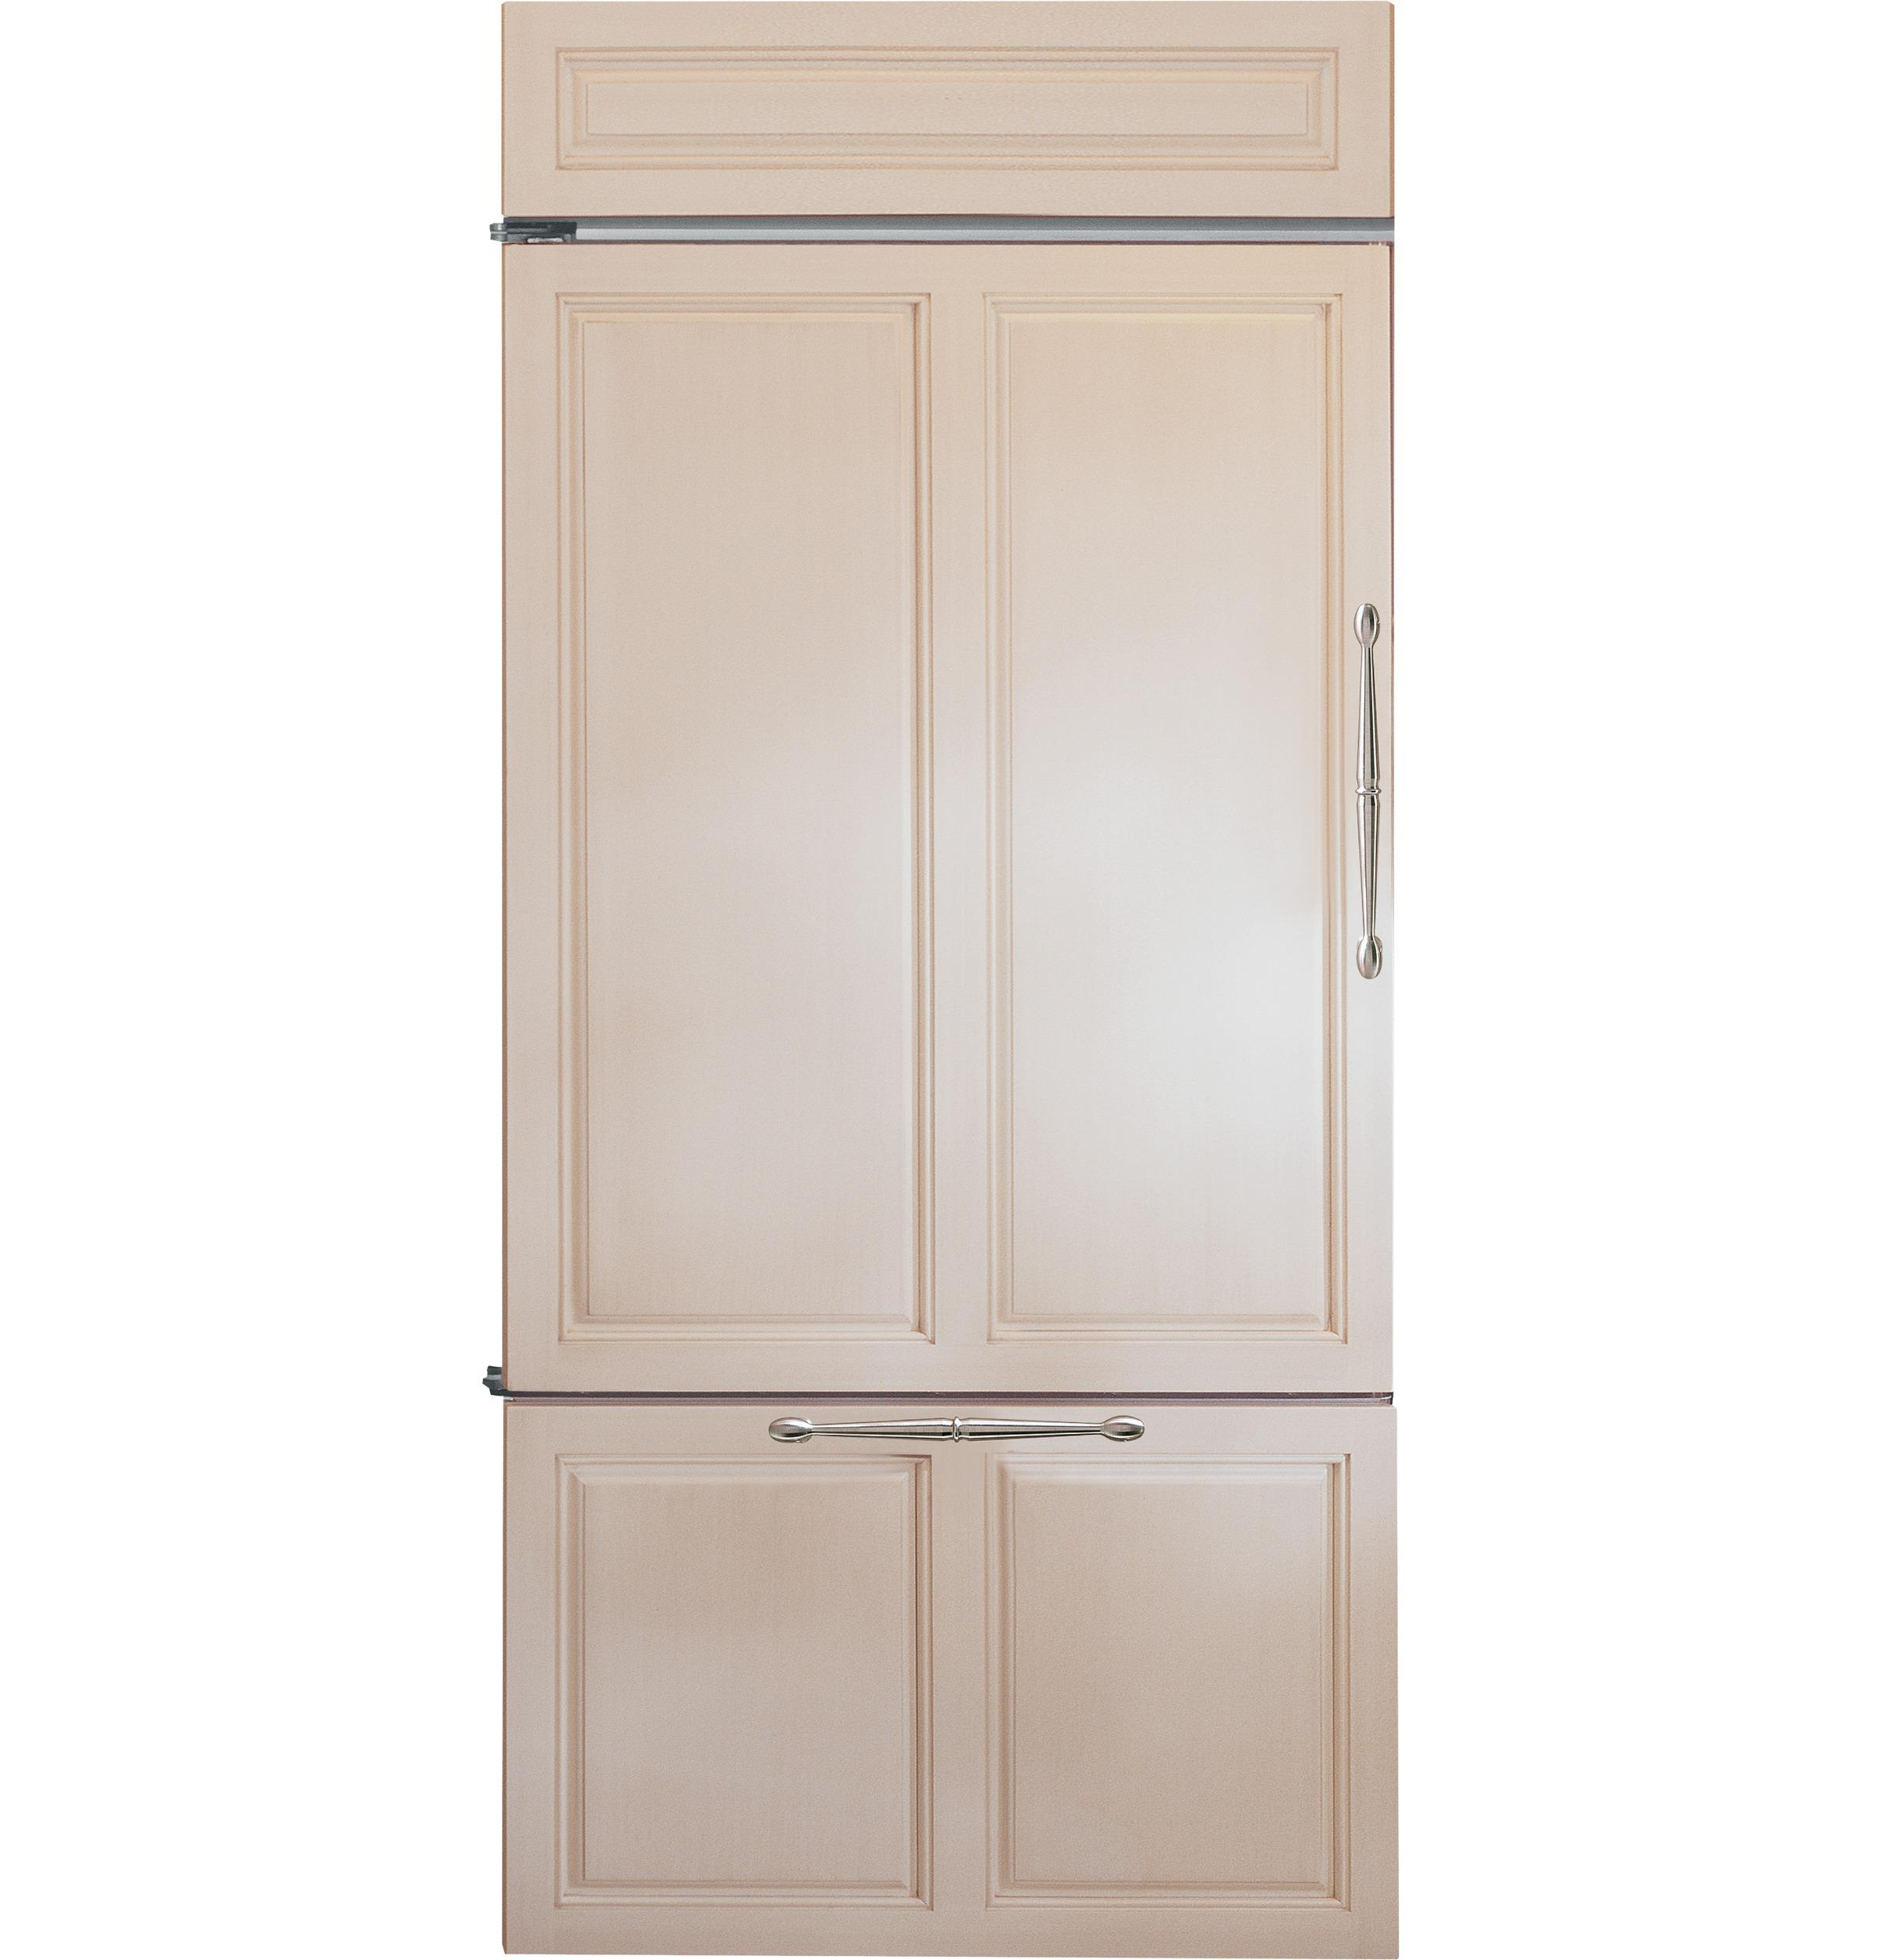 "21.33 cu. ft 36"" Bottom-Freezer Refrigerator"